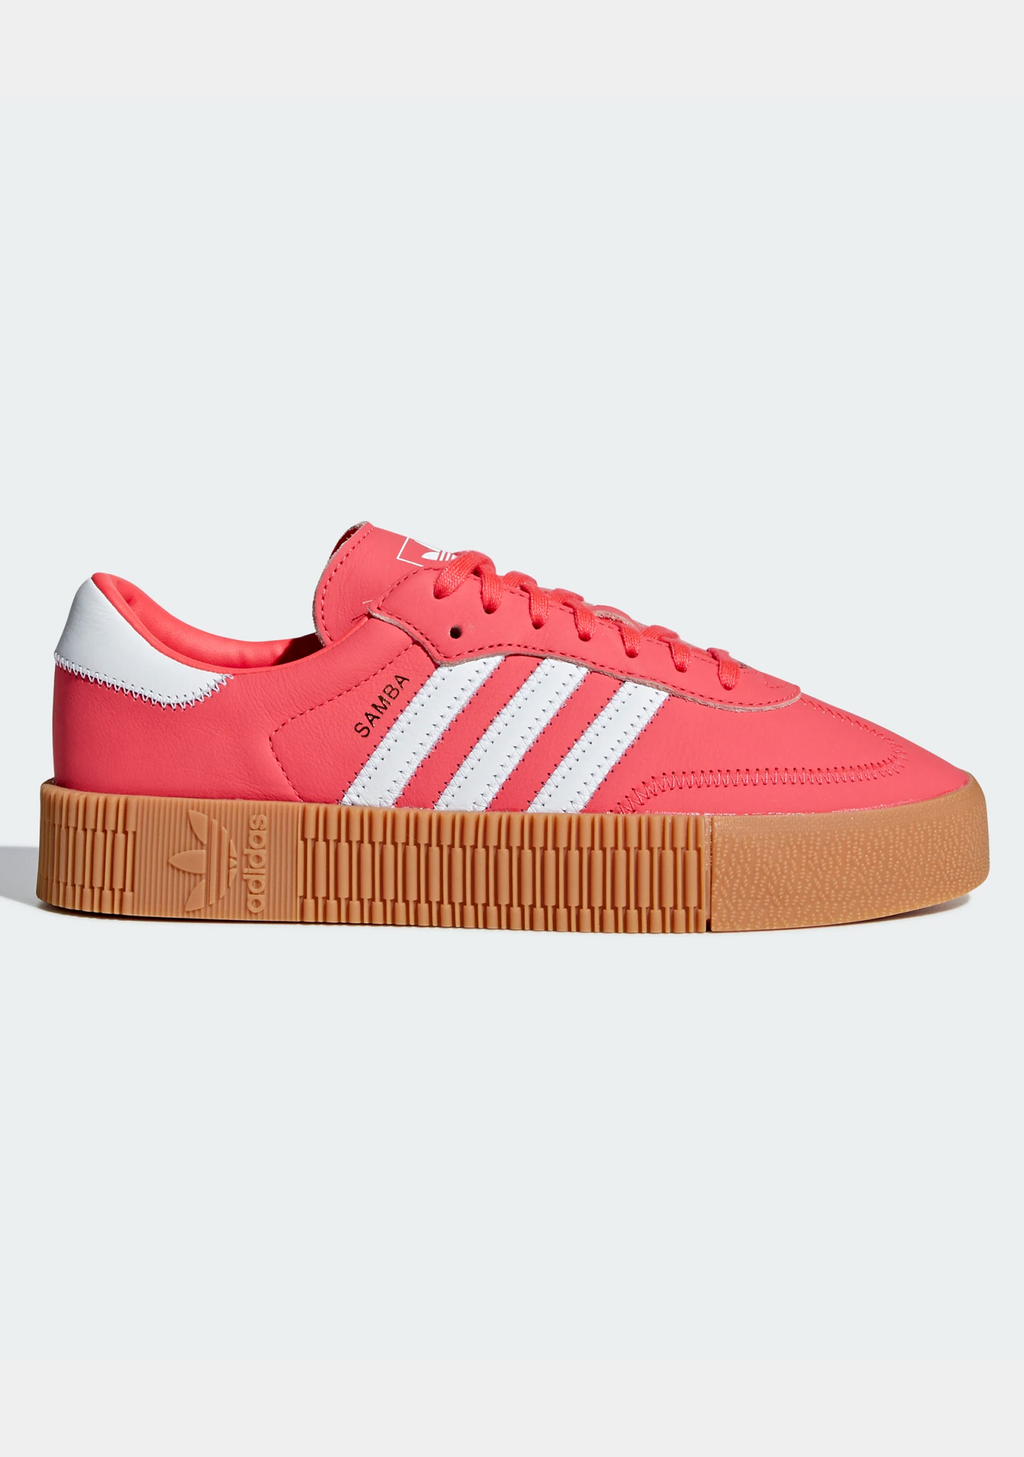 ADIDAS ORIGINALS WOMENS SAMBAROSE SHOES <br> DB2696